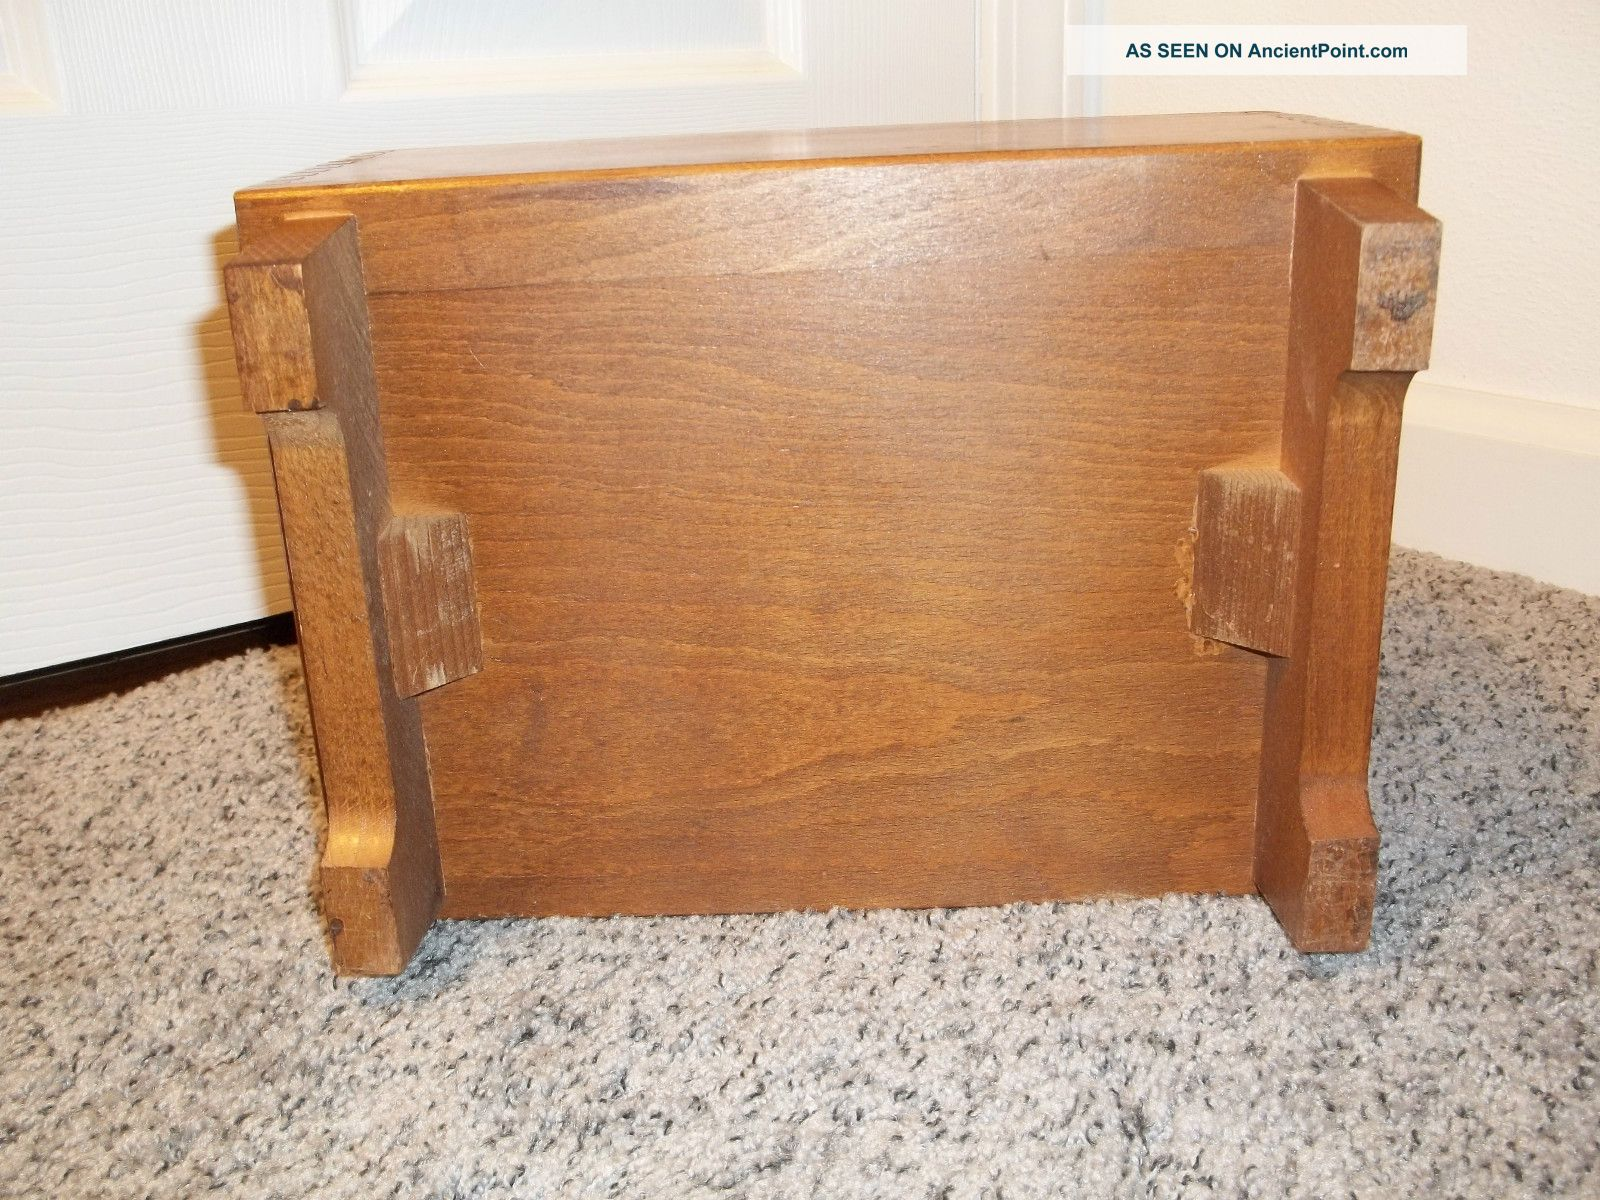 Superb img of Vintage Amcrest Dovetailed Wooden Shoe Shine Box Made In Italy With  with #28170E color and 1600x1200 pixels